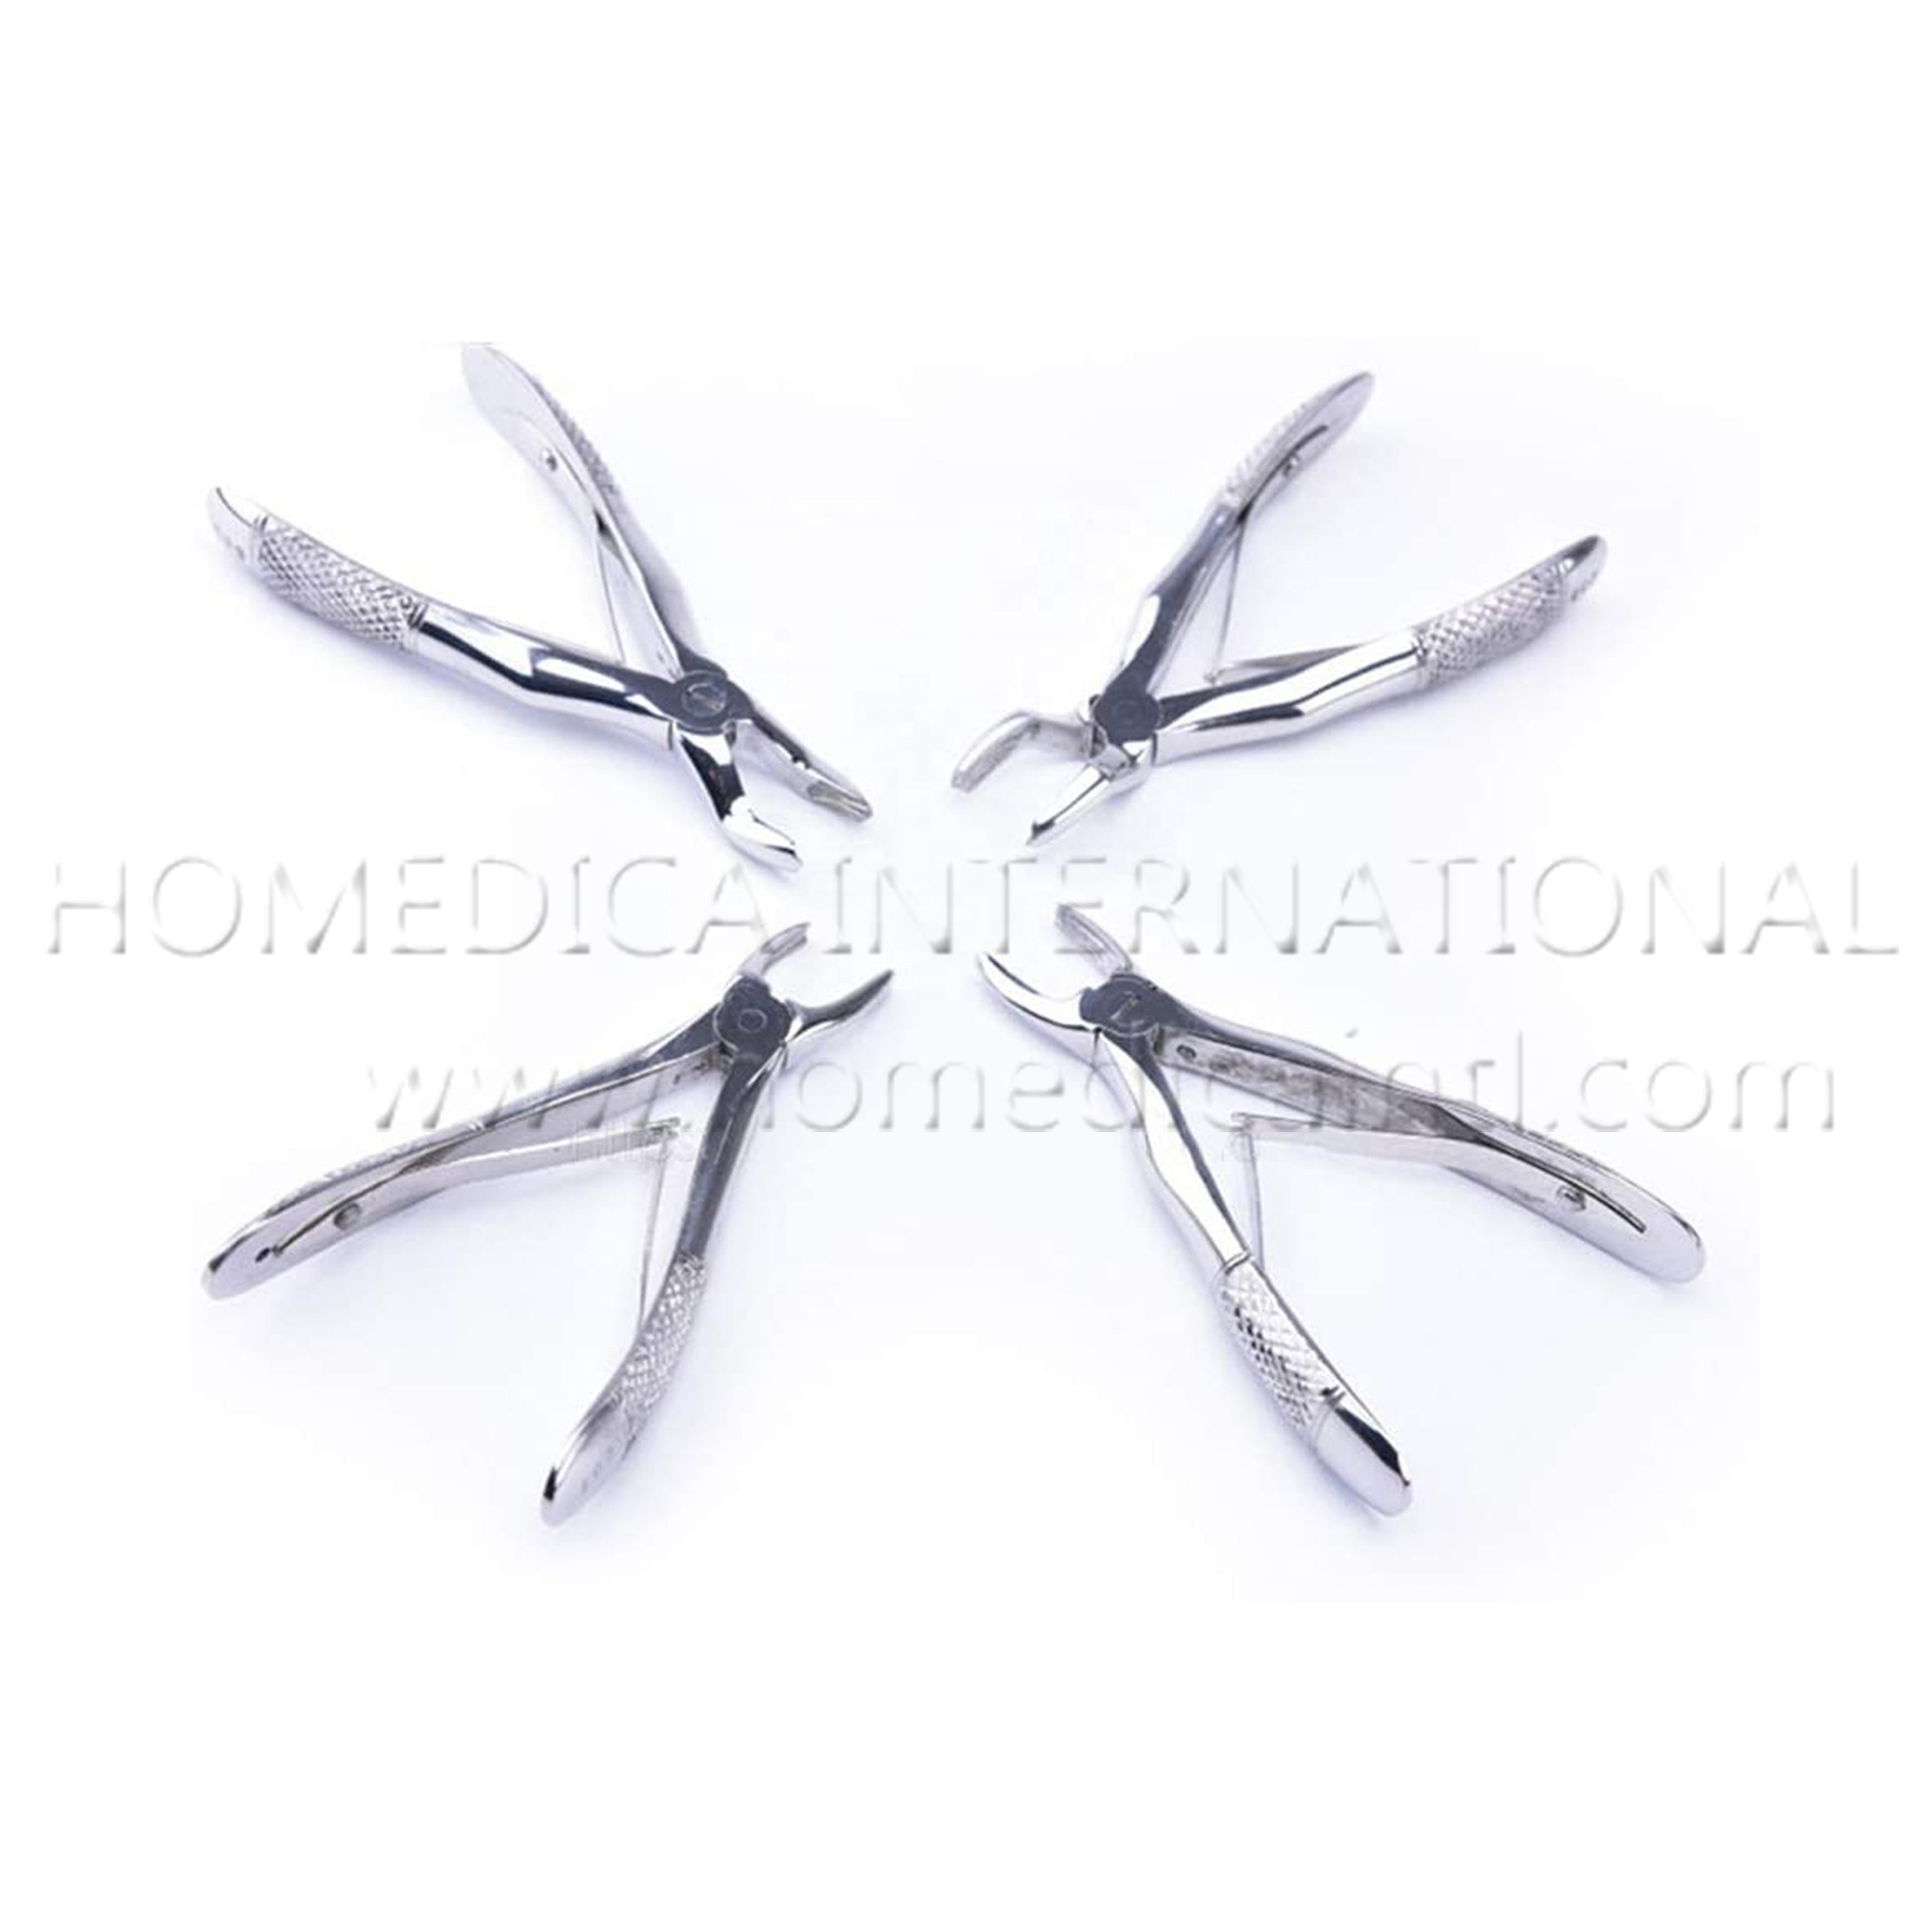 7 Pcs Surgical Instrument Dental Extraction Forceps kit